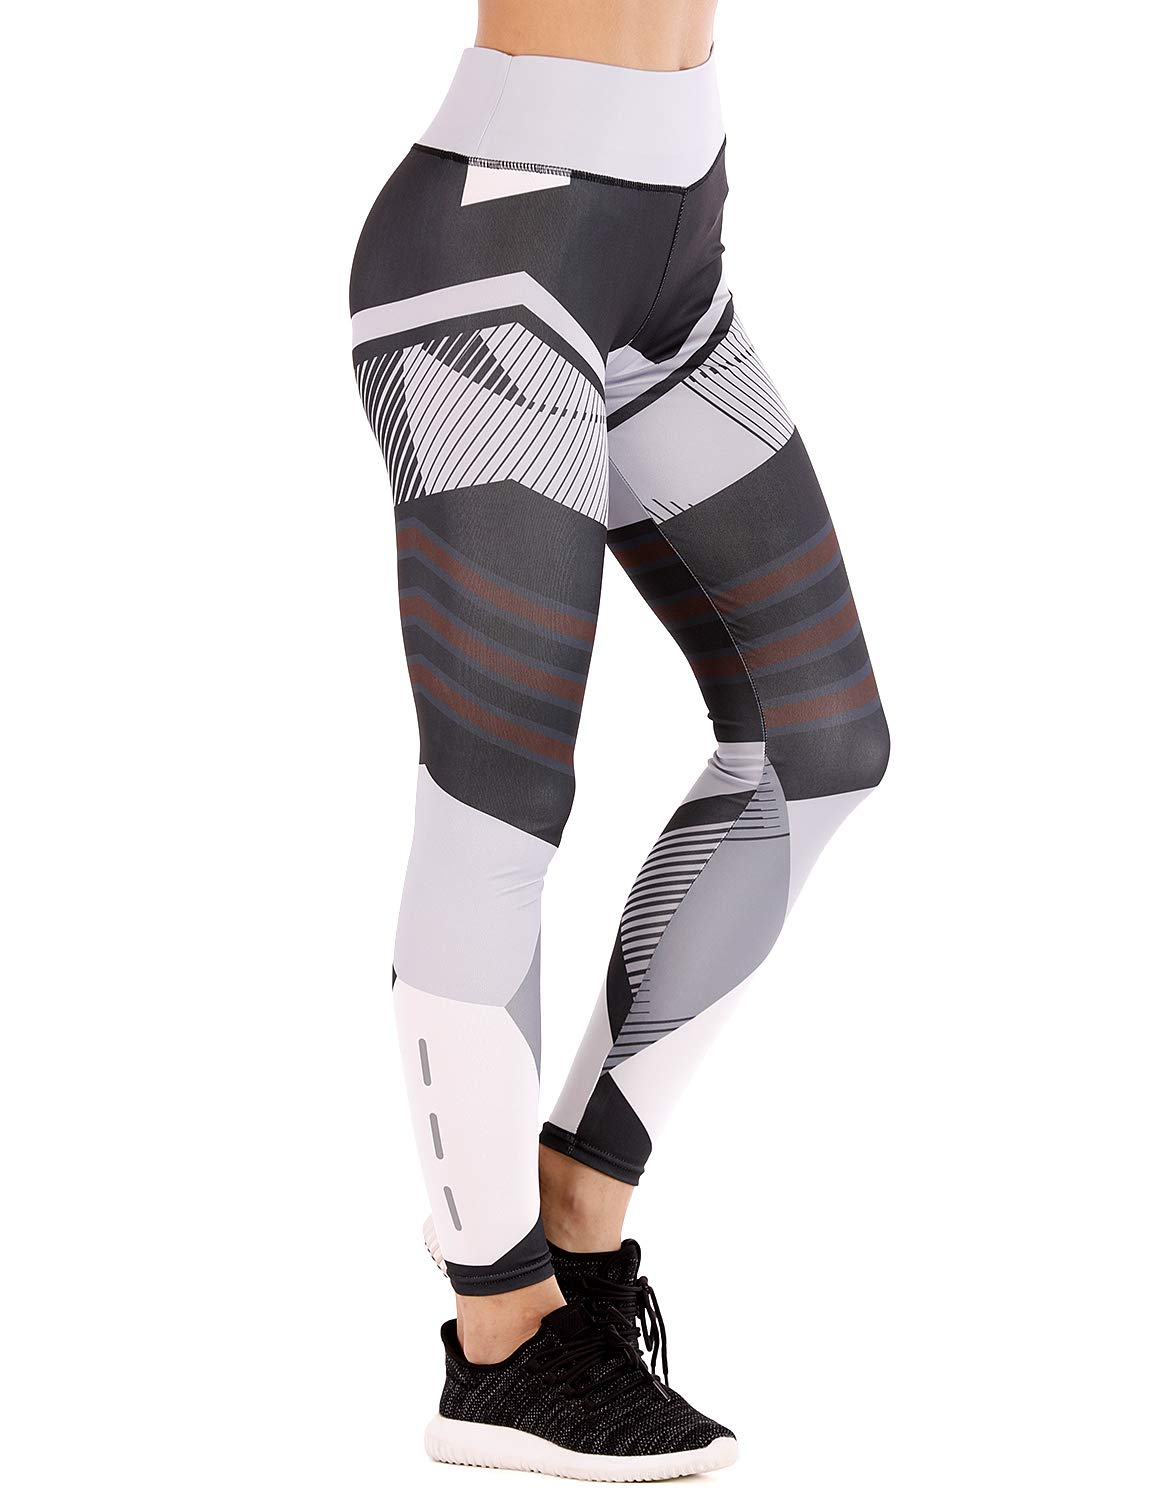 GoLoveY High Waist Yoga Pants Women Capris Printed Leggings Sport Tights Running